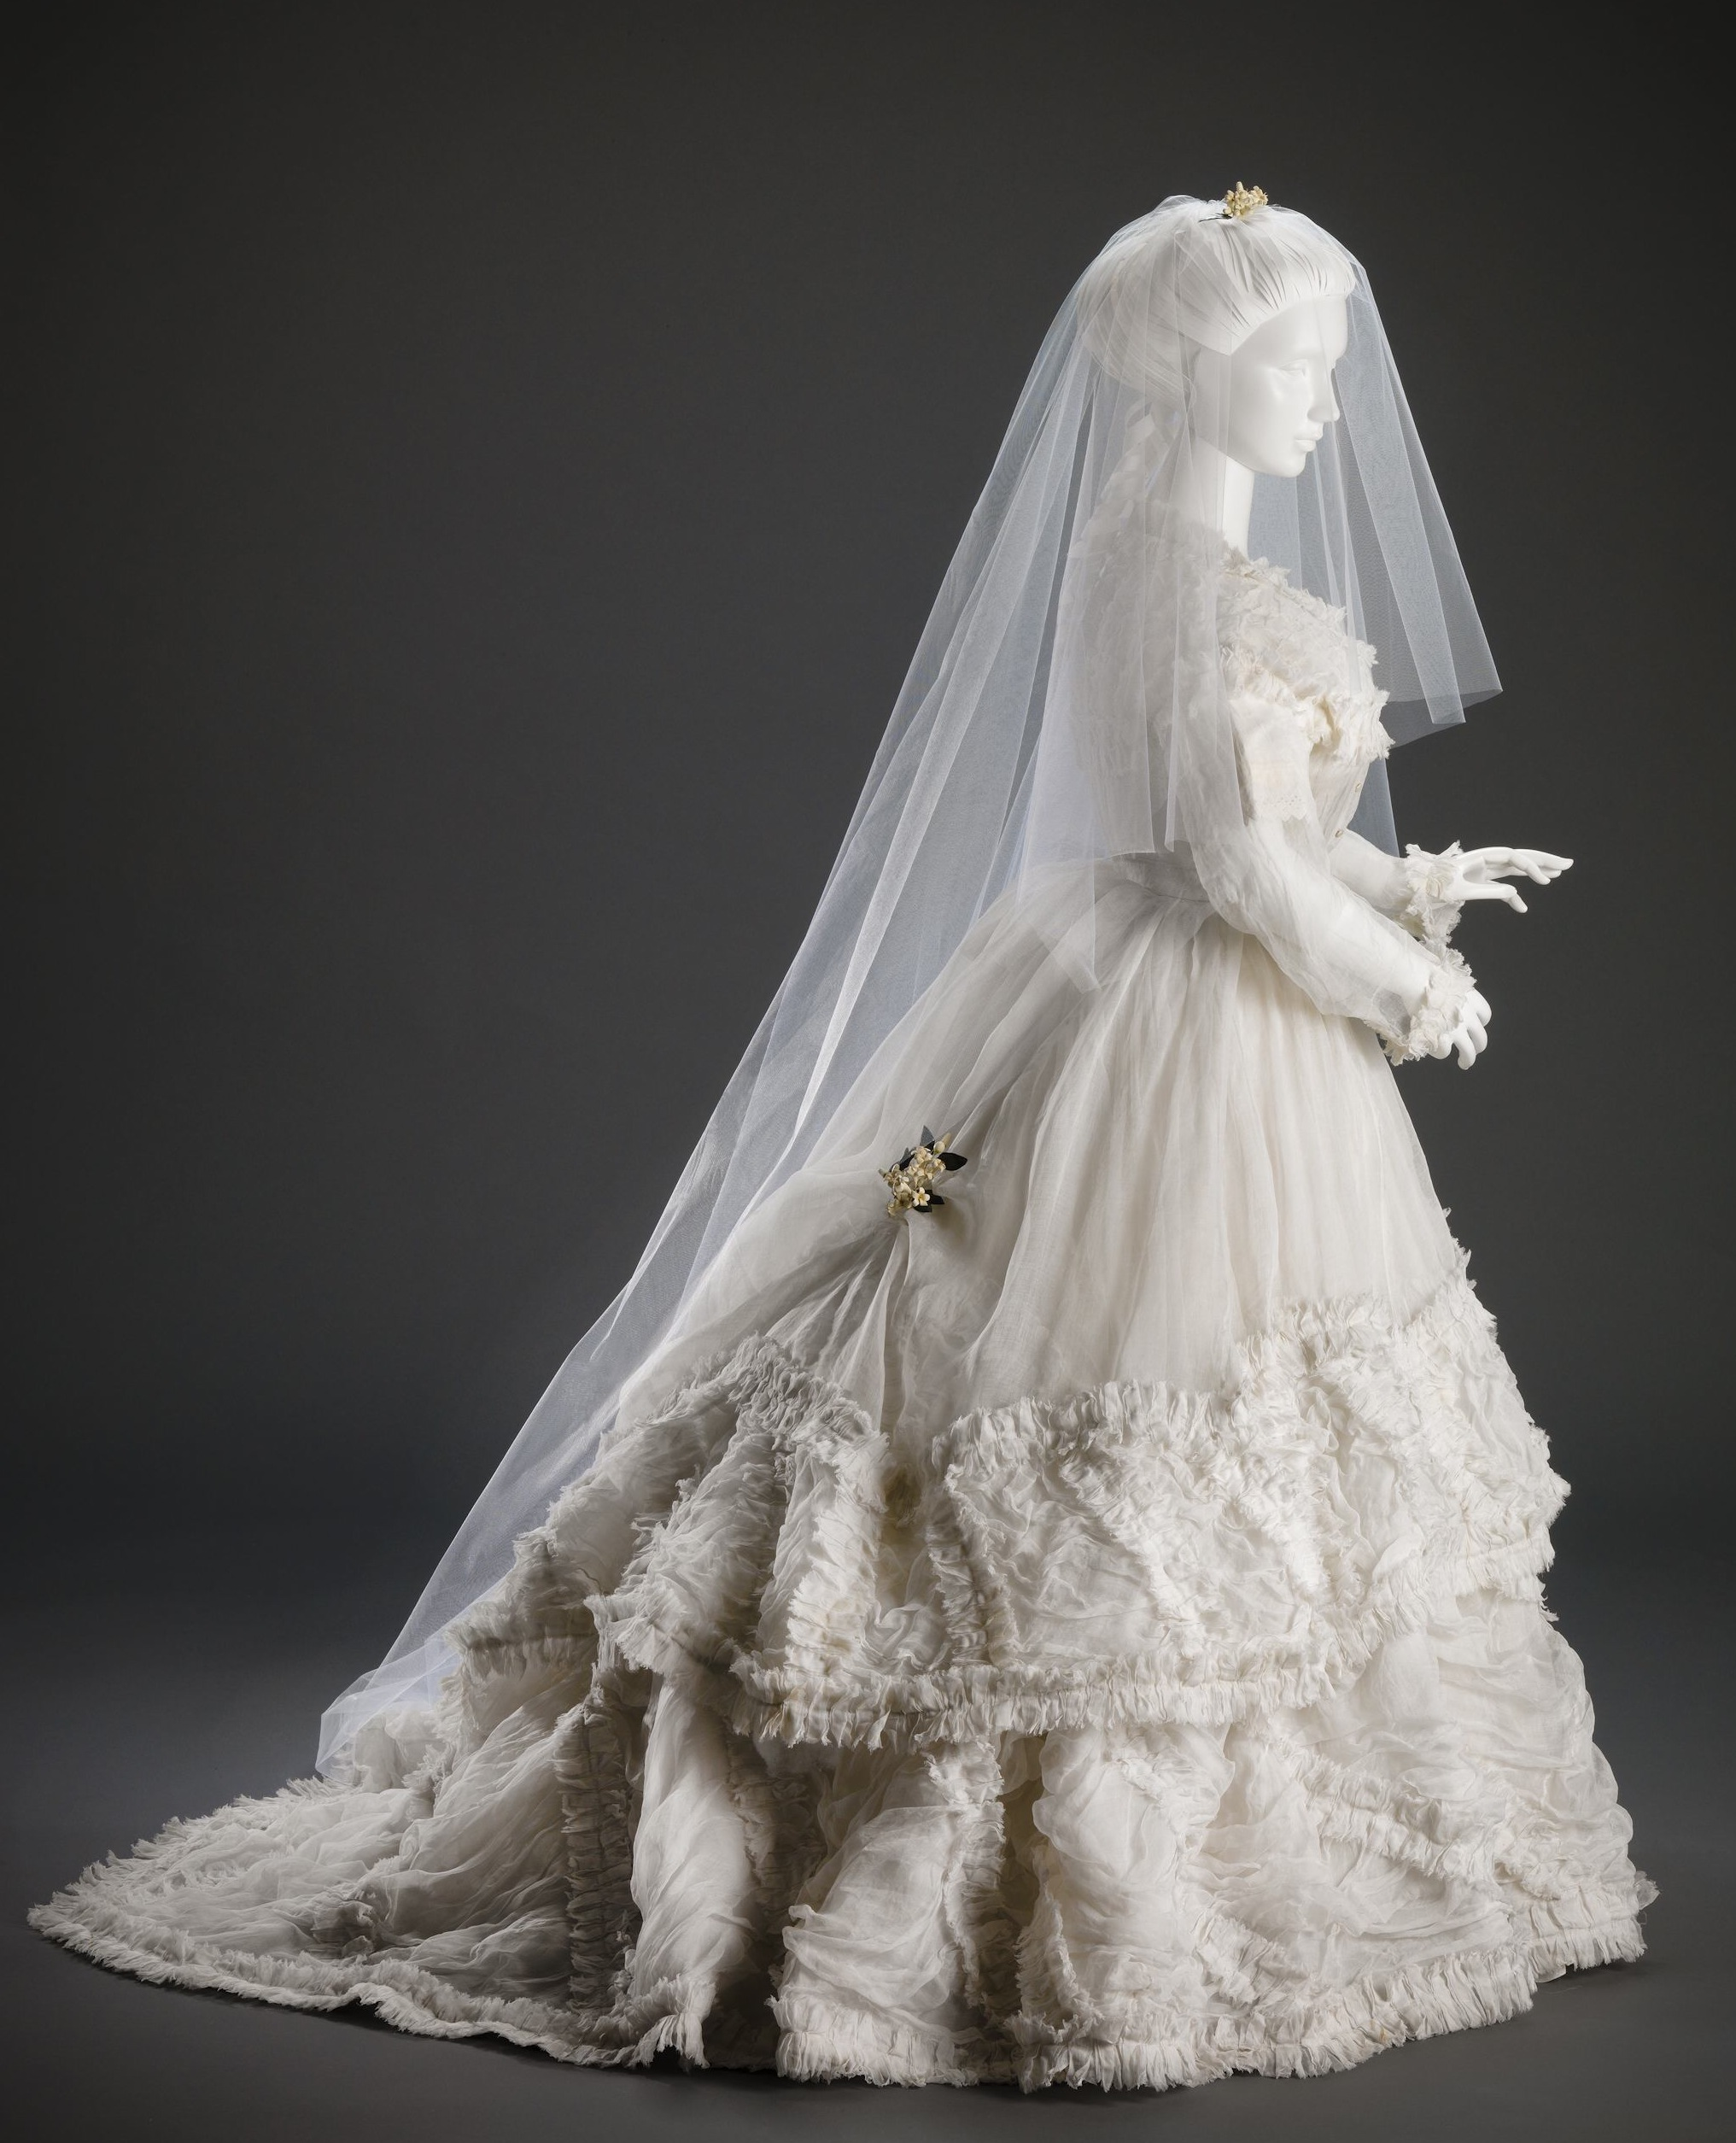 Wedded perfection two centuries of wedding gowns part i for 19th century wedding dresses